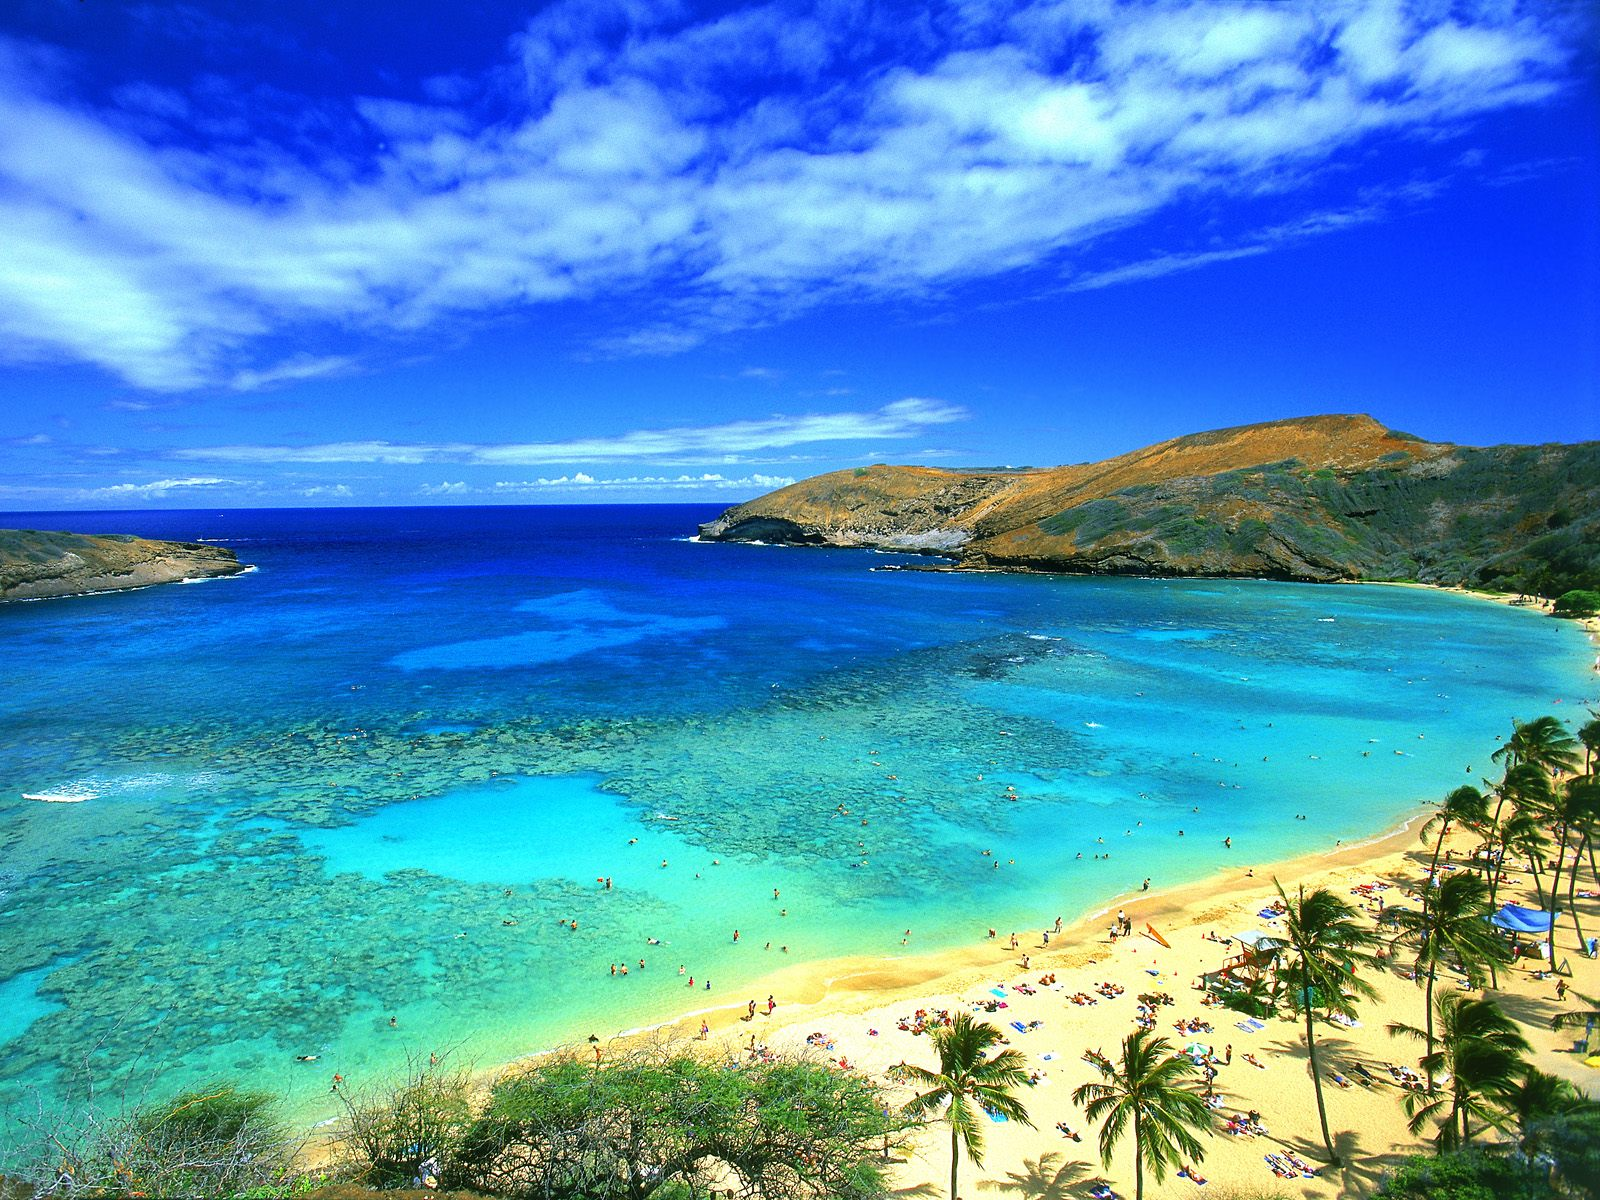 Hanauma Bay Oahu Hawaii   Canada Photography Desktop Wallpapers 1600x1200